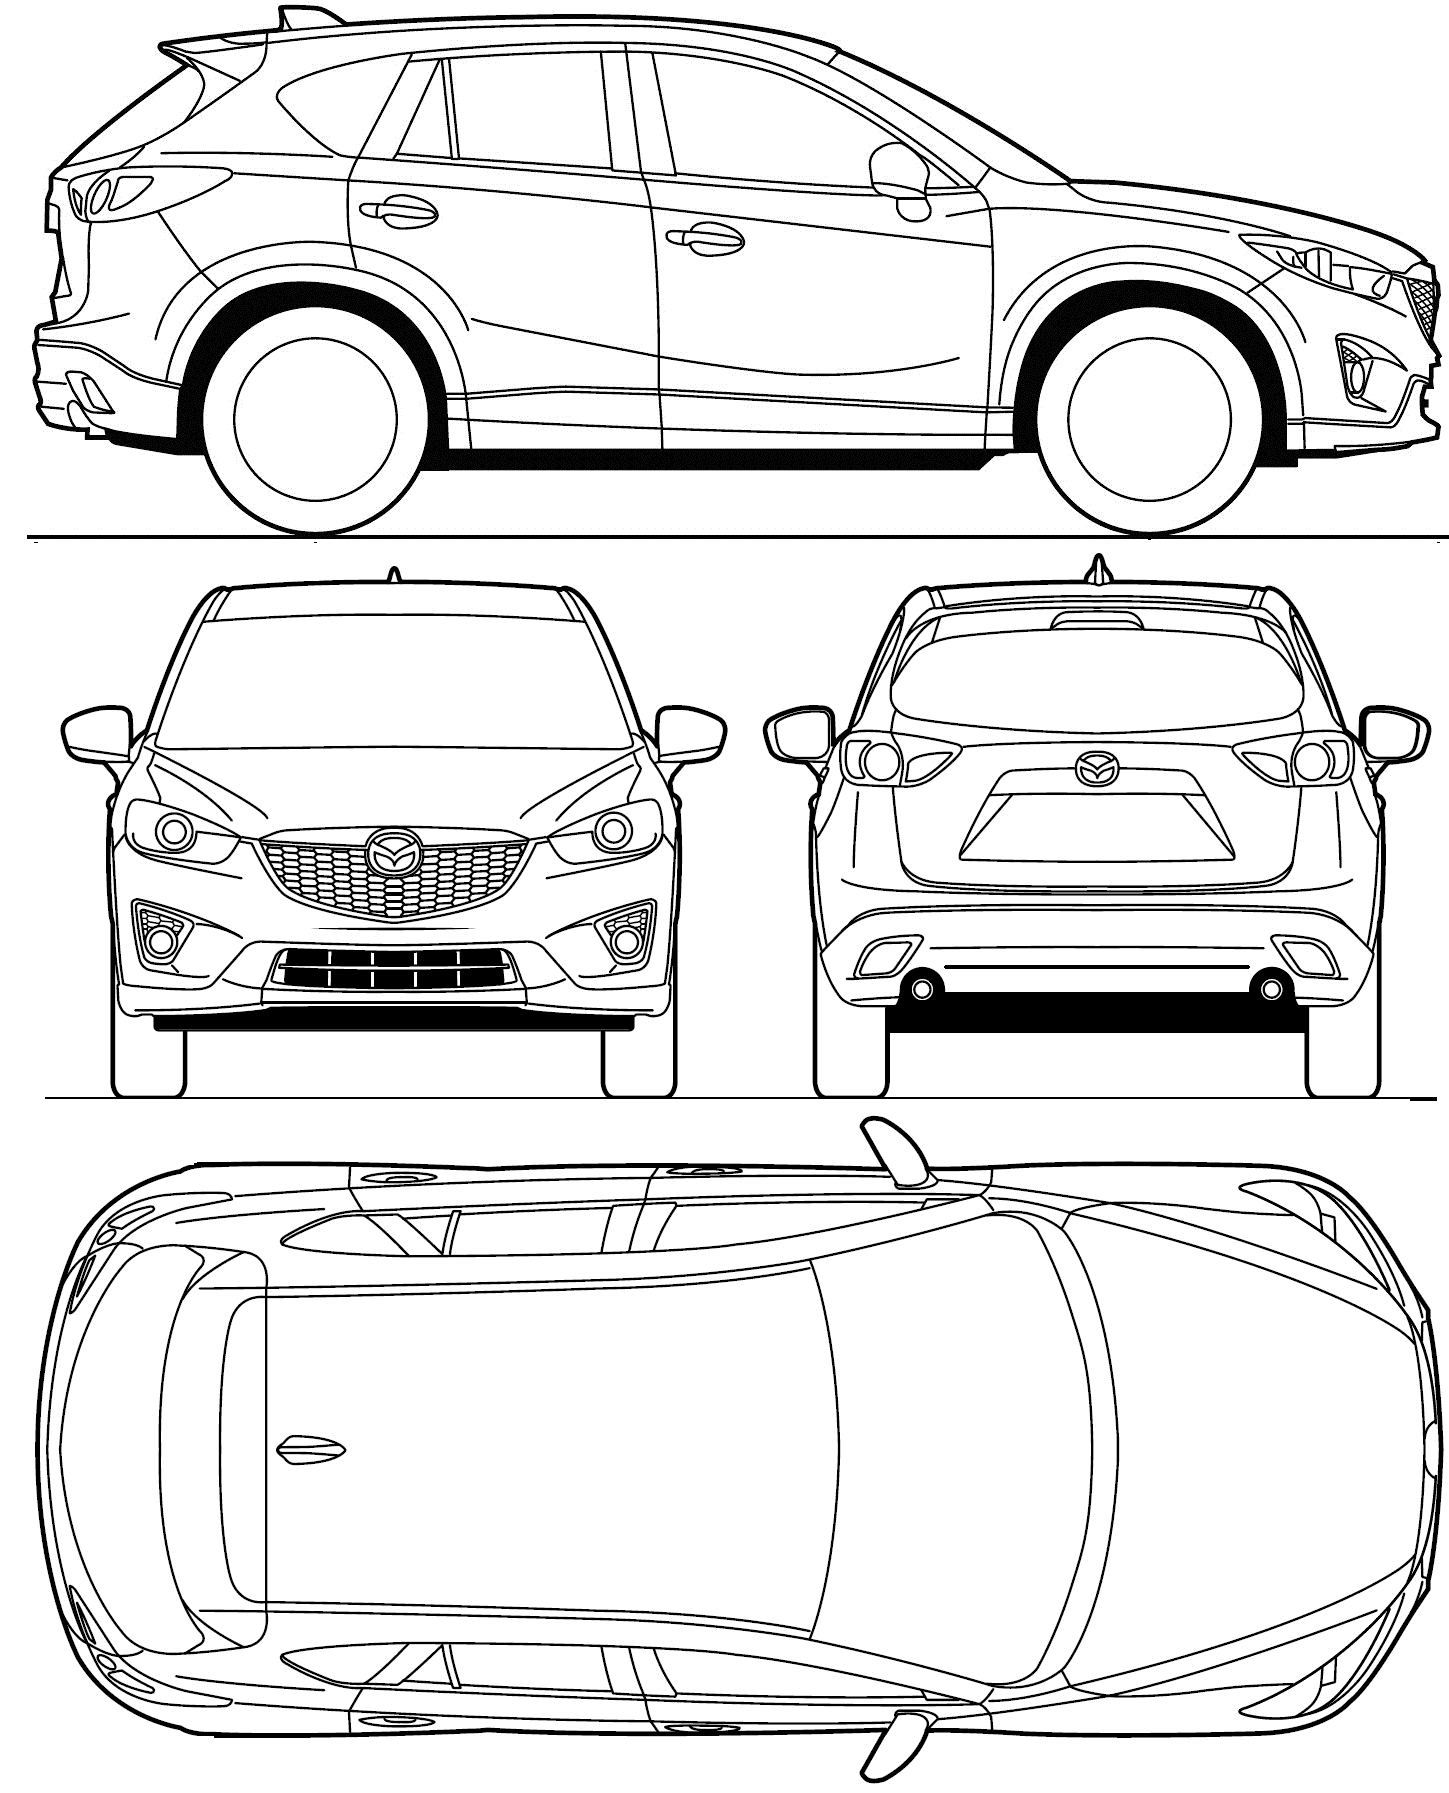 Mazda CX-5 blueprint